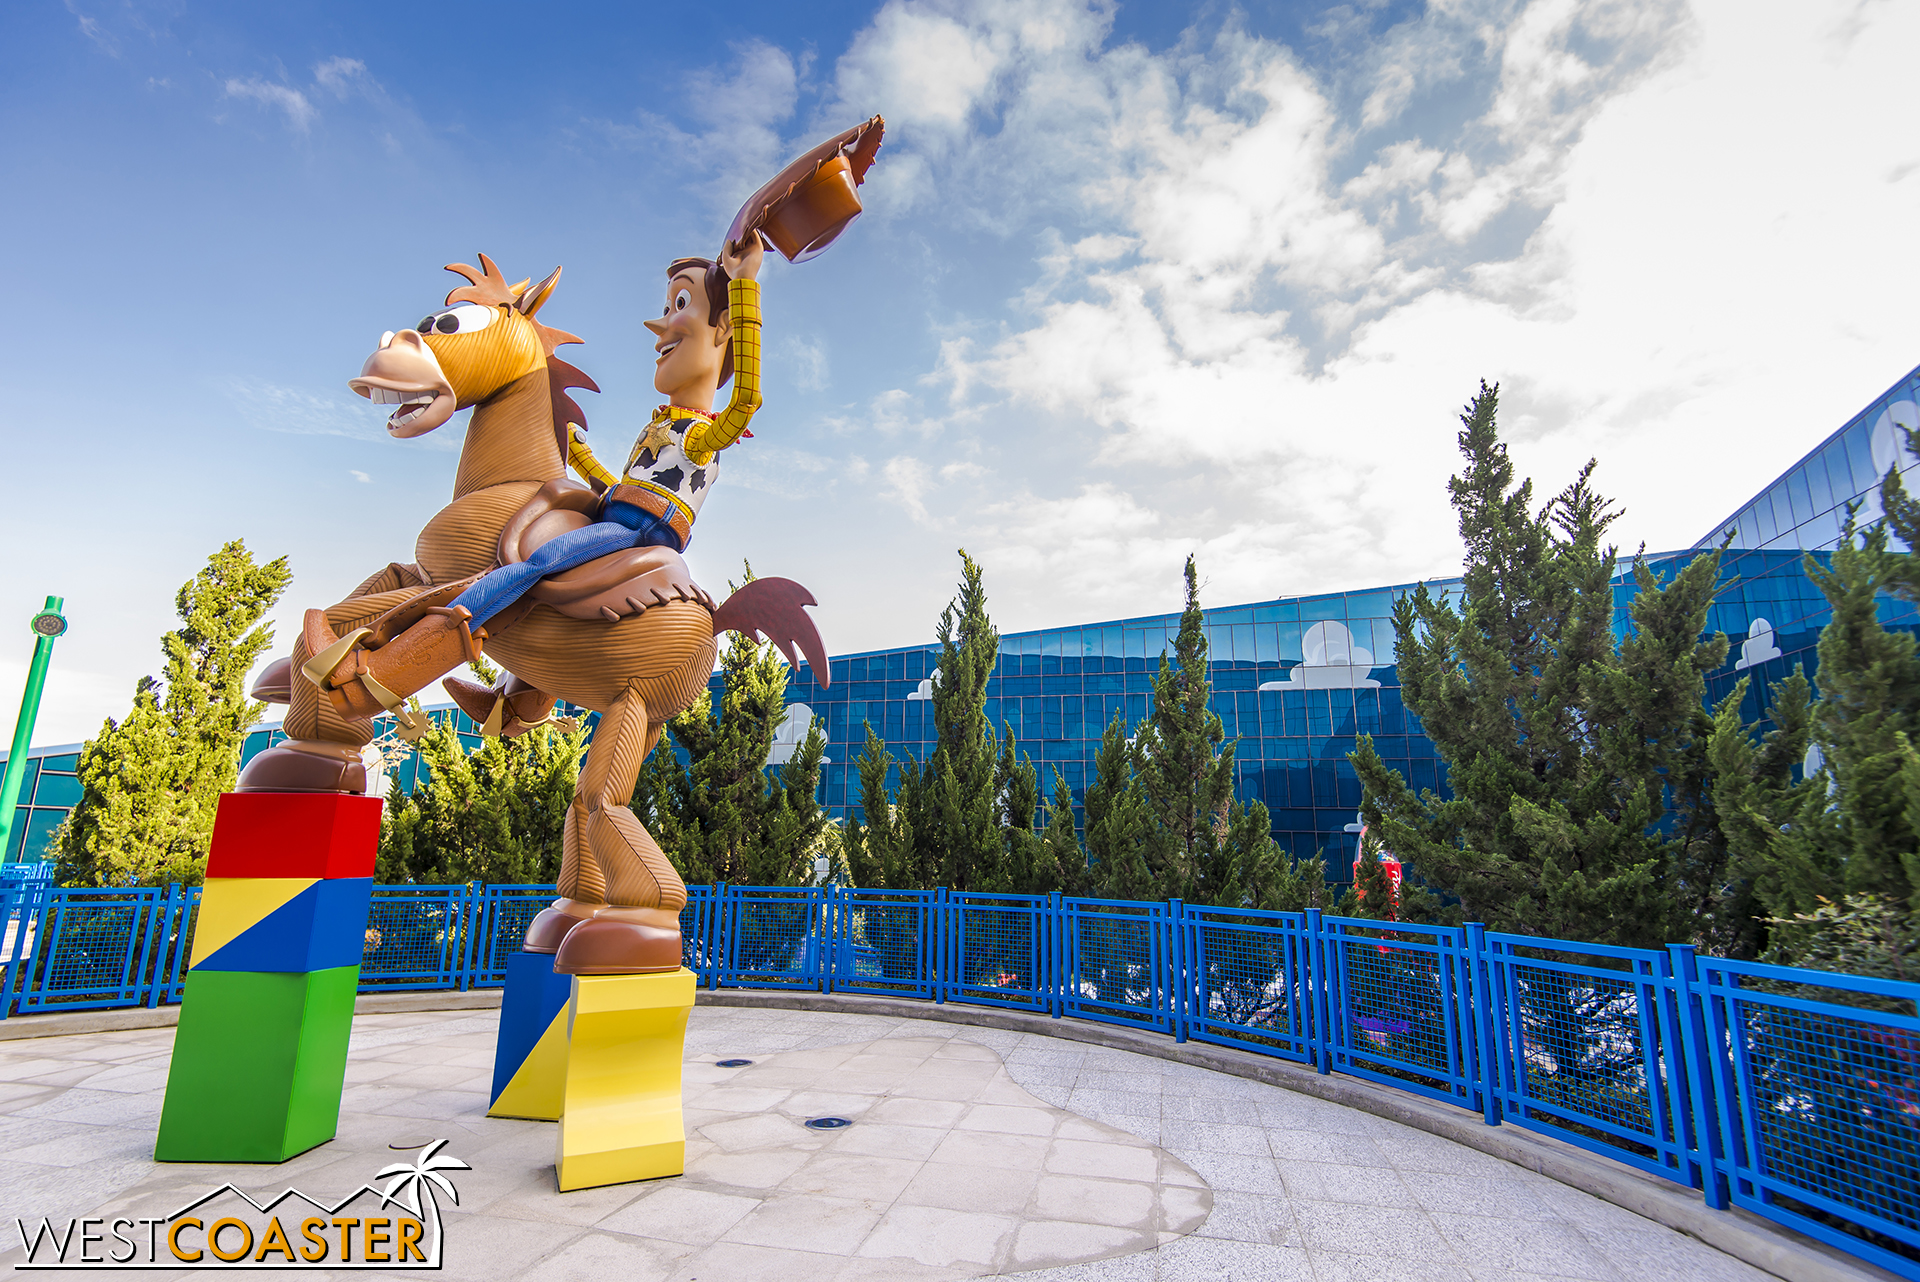 Plaza within the Toy Story Hotel.